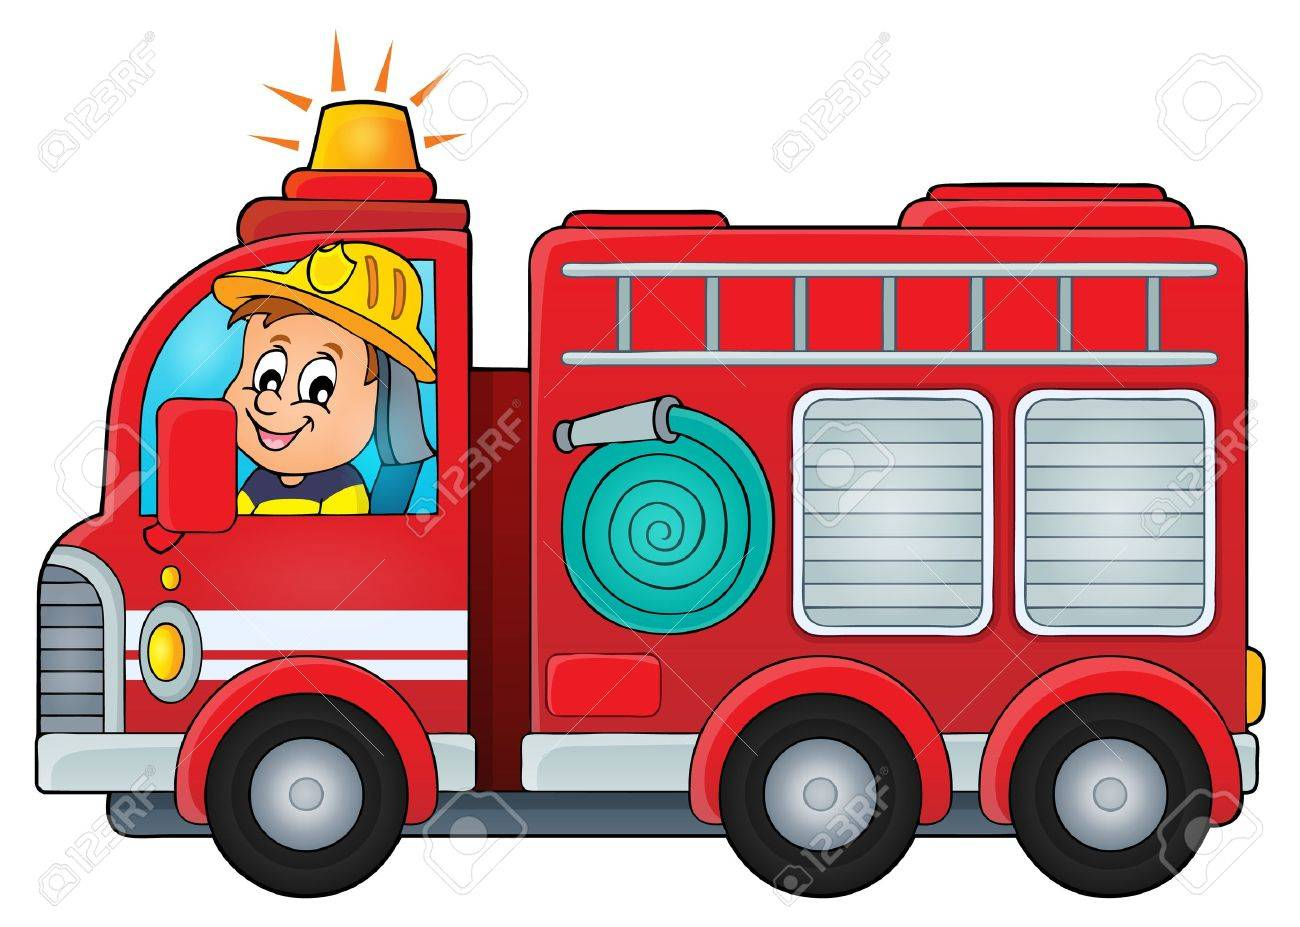 8 246 fire truck stock illustrations cliparts and royalty free fire rh 123rf com fire truck clipart fire engine clip art black and white